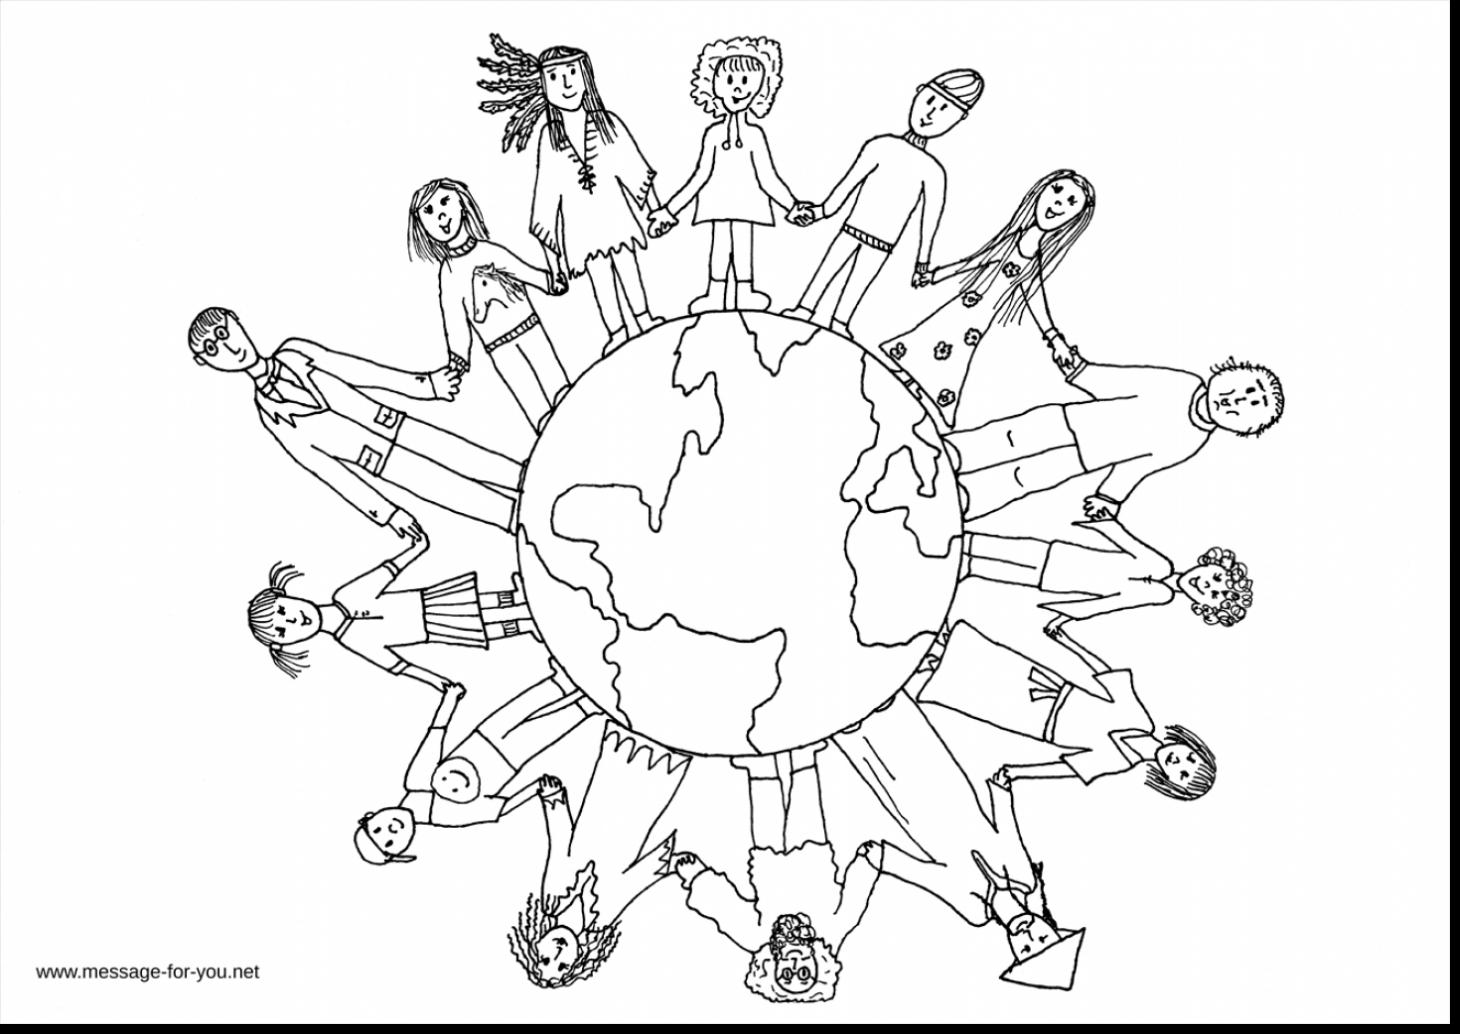 1460x1034 Helping Hands Coloring Page Free Printable Pages Stuning